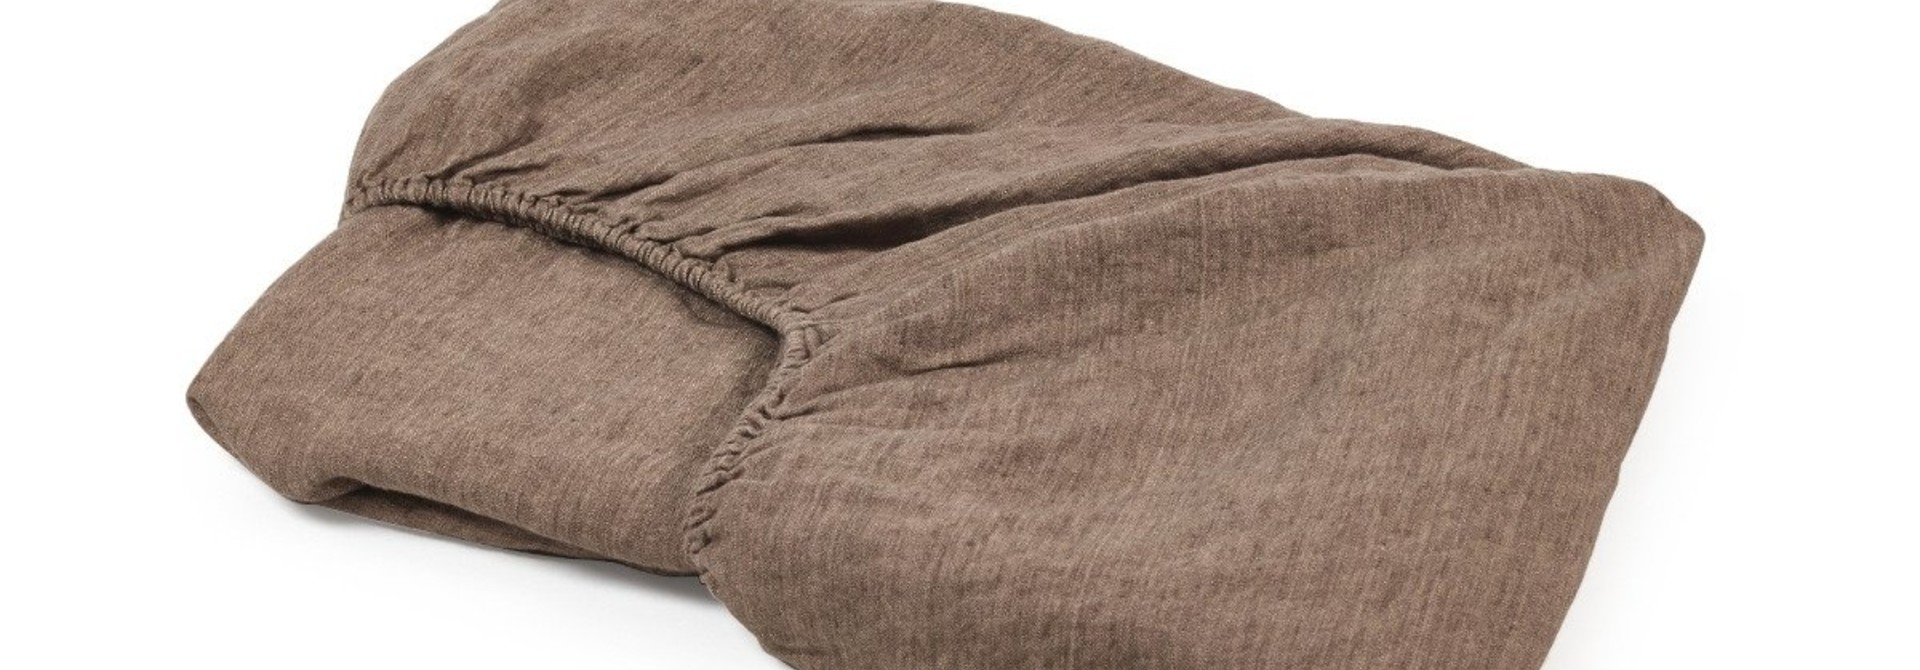 Fitted Sheet King - Nottinghill - Brown